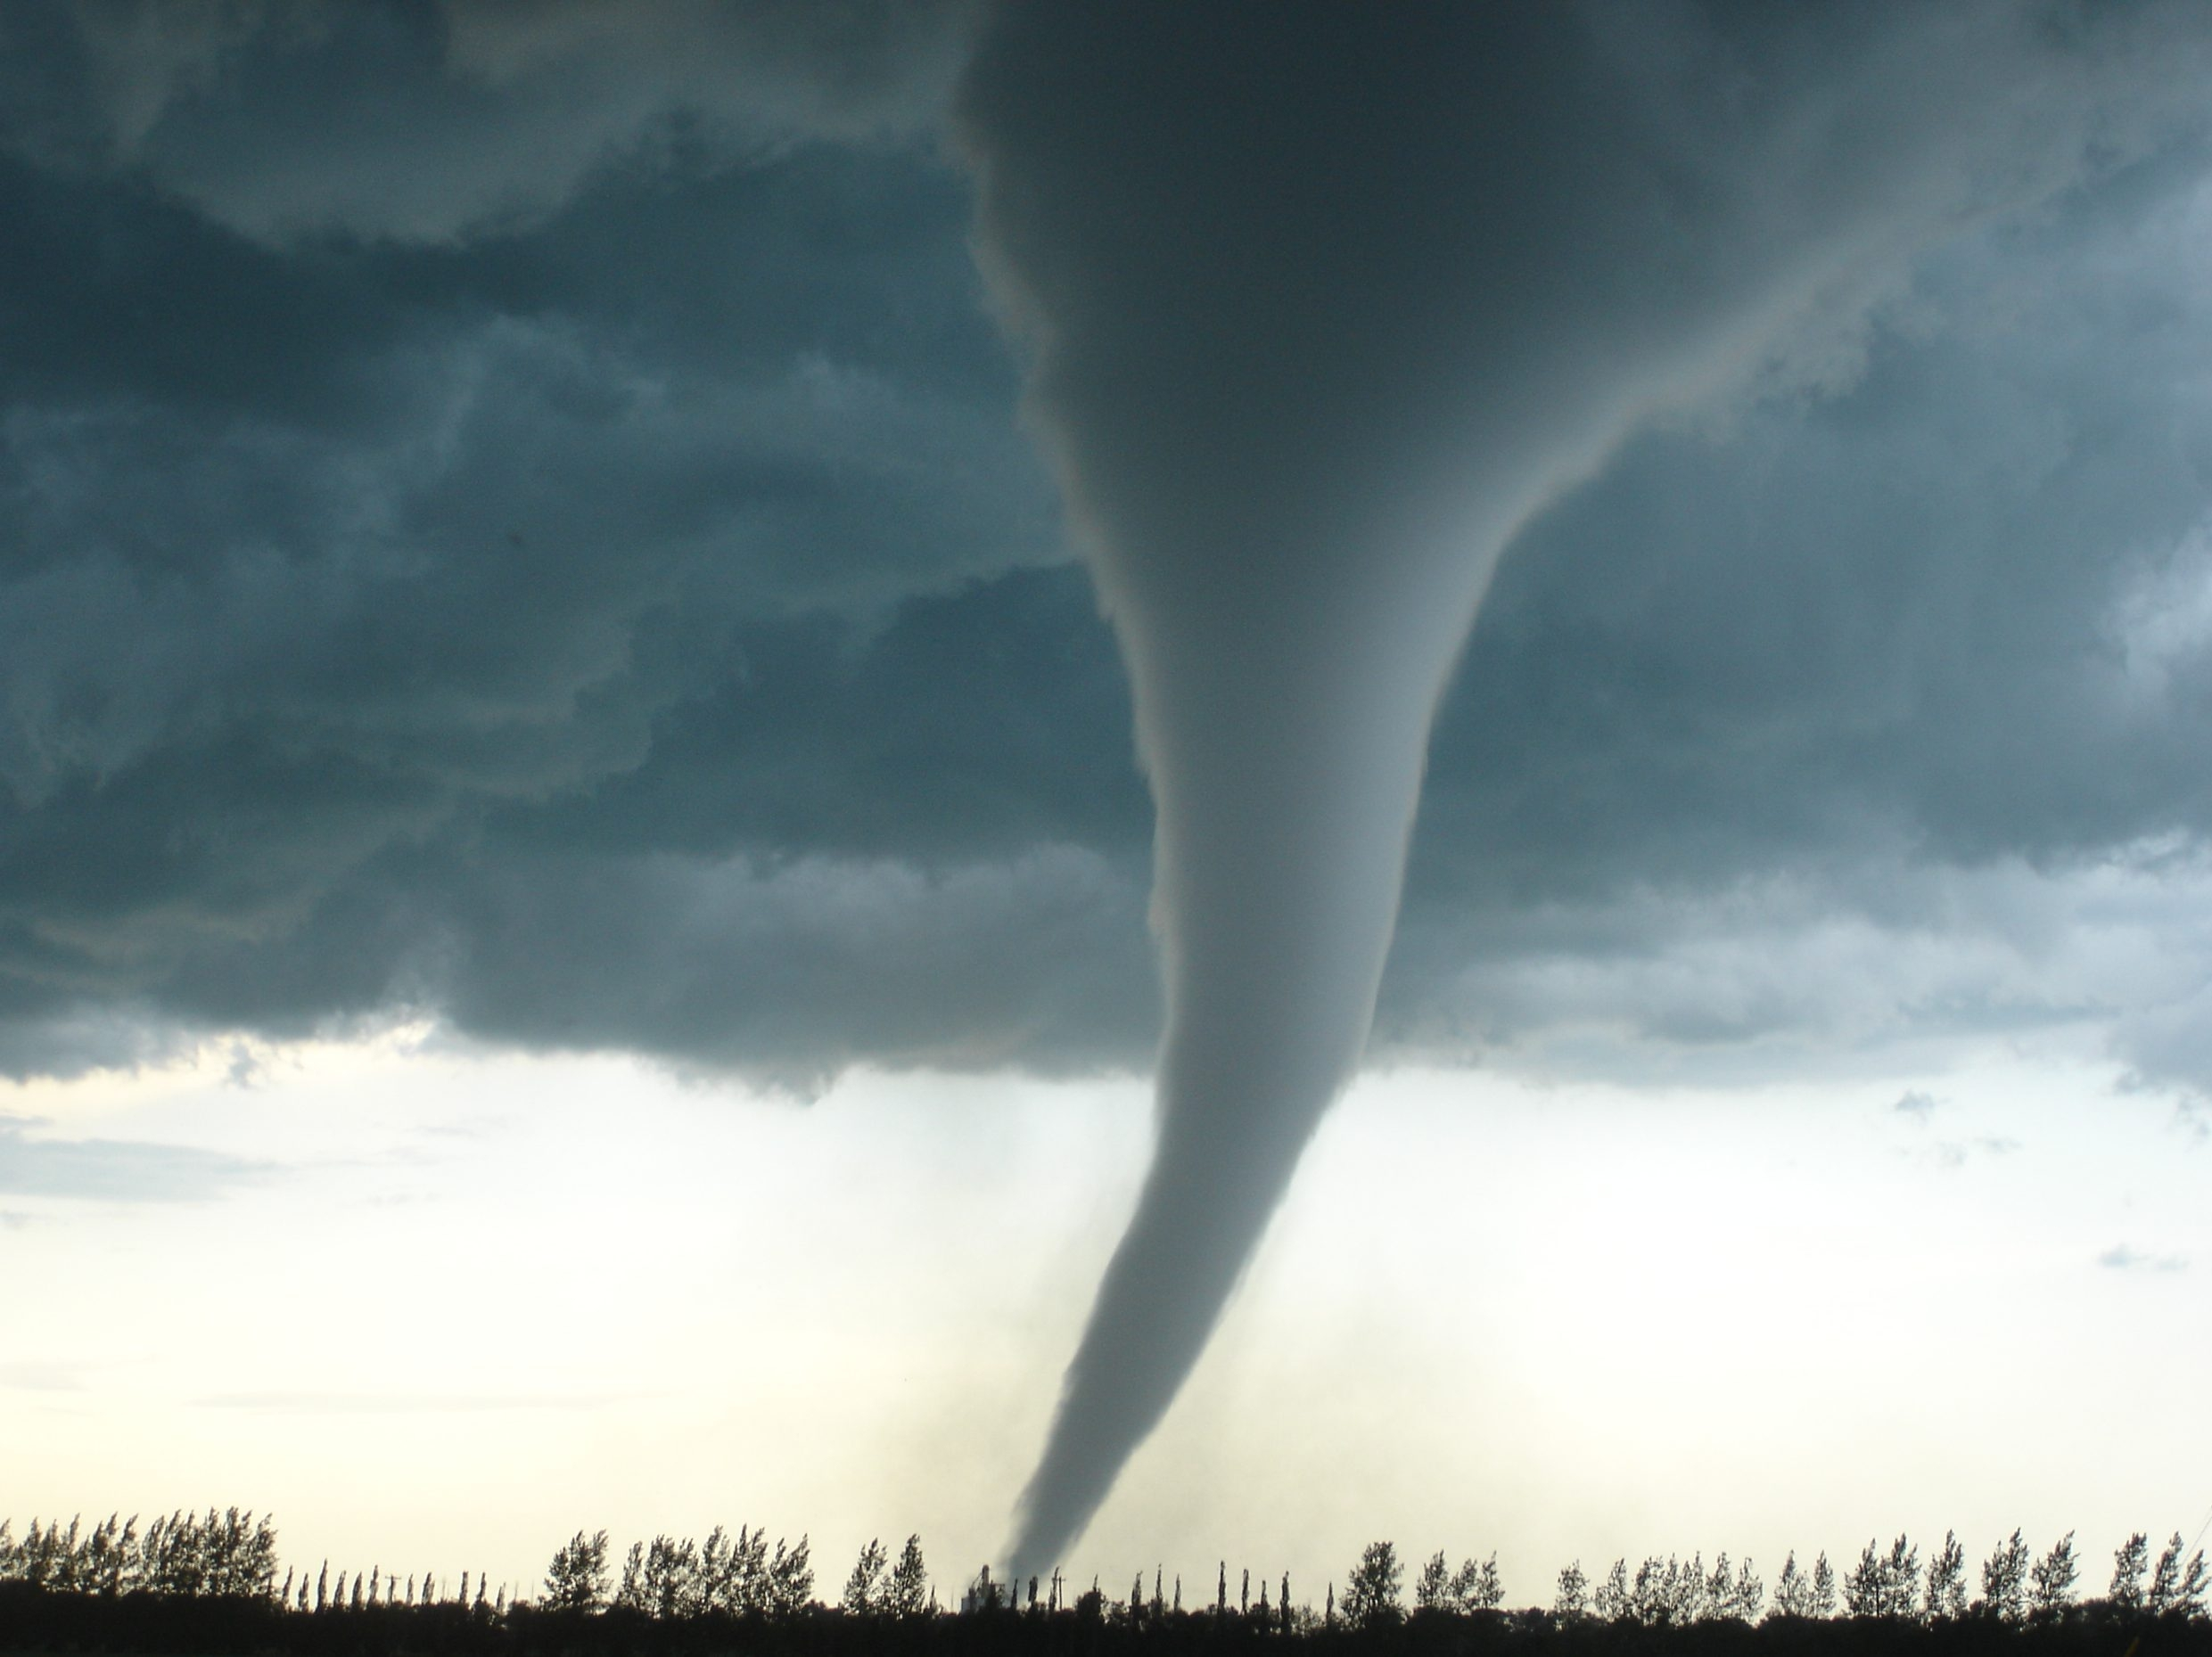 McKennas claim of more tornadoes in Canada not clear: Meteorologist